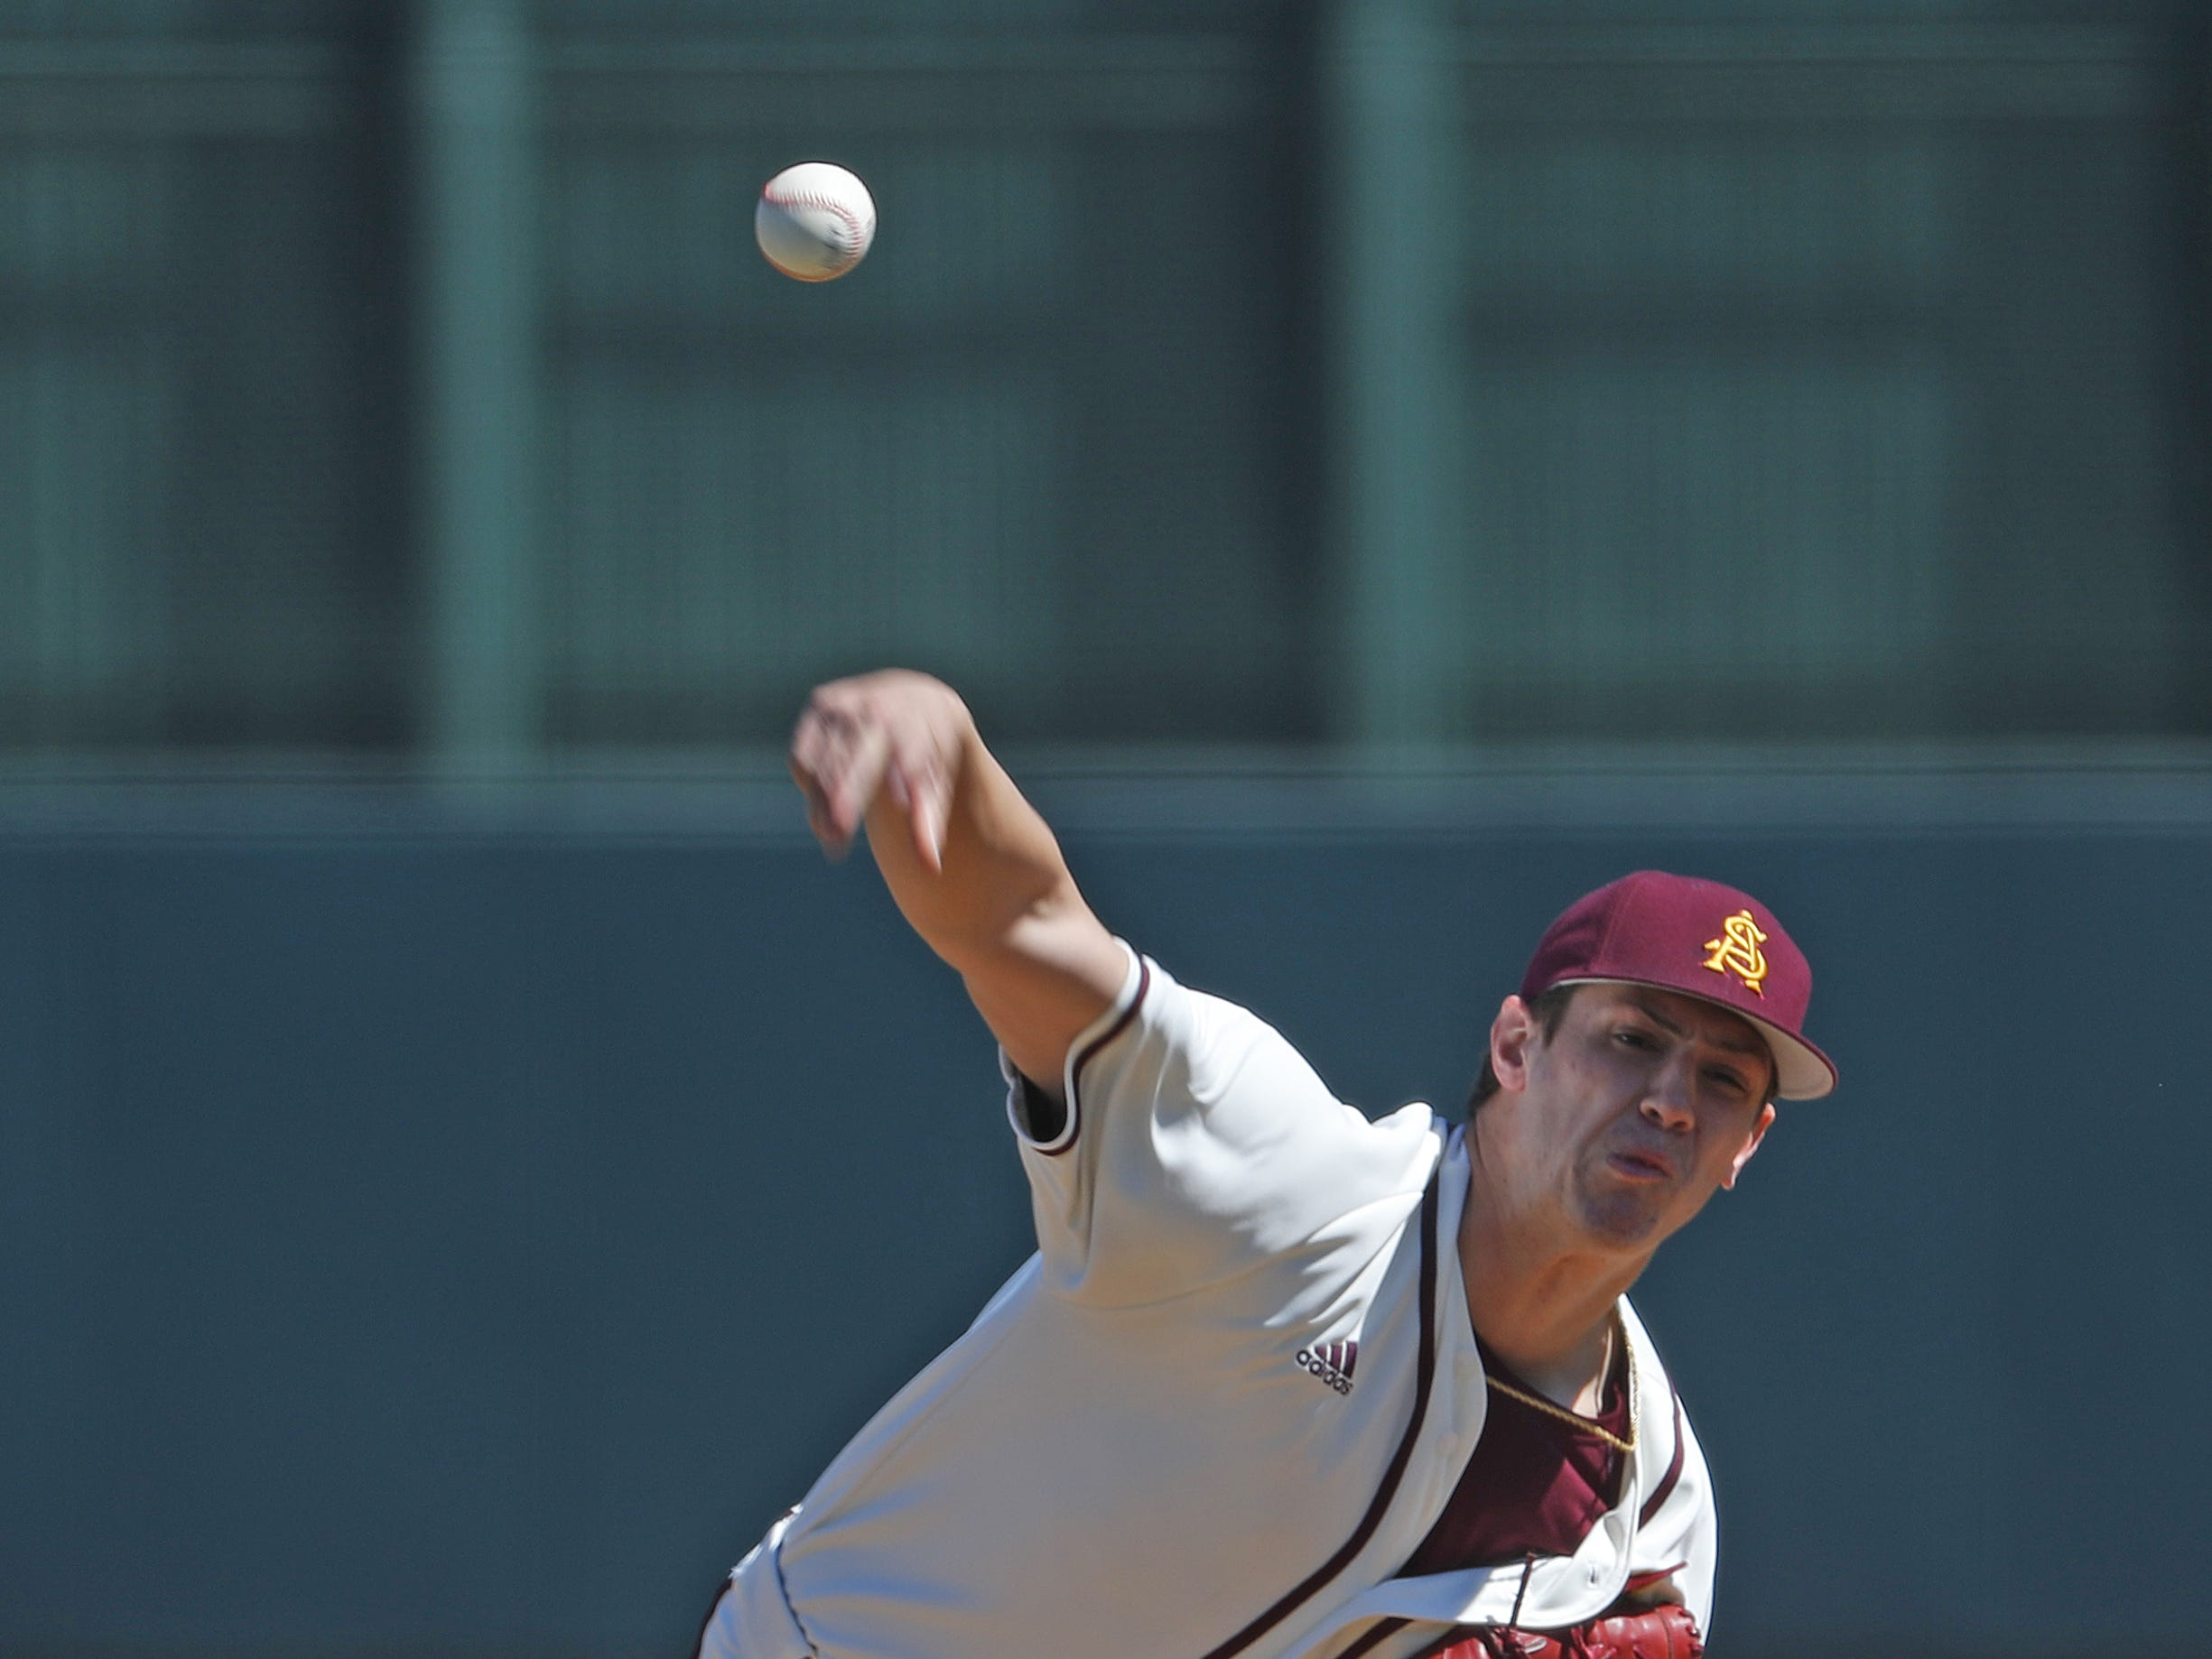 ASU's RJ Dabovich pitches during the first inning against Xavier at Phoenix Municipal Stadium in Phoenix, Ariz. on March 10, 2019.